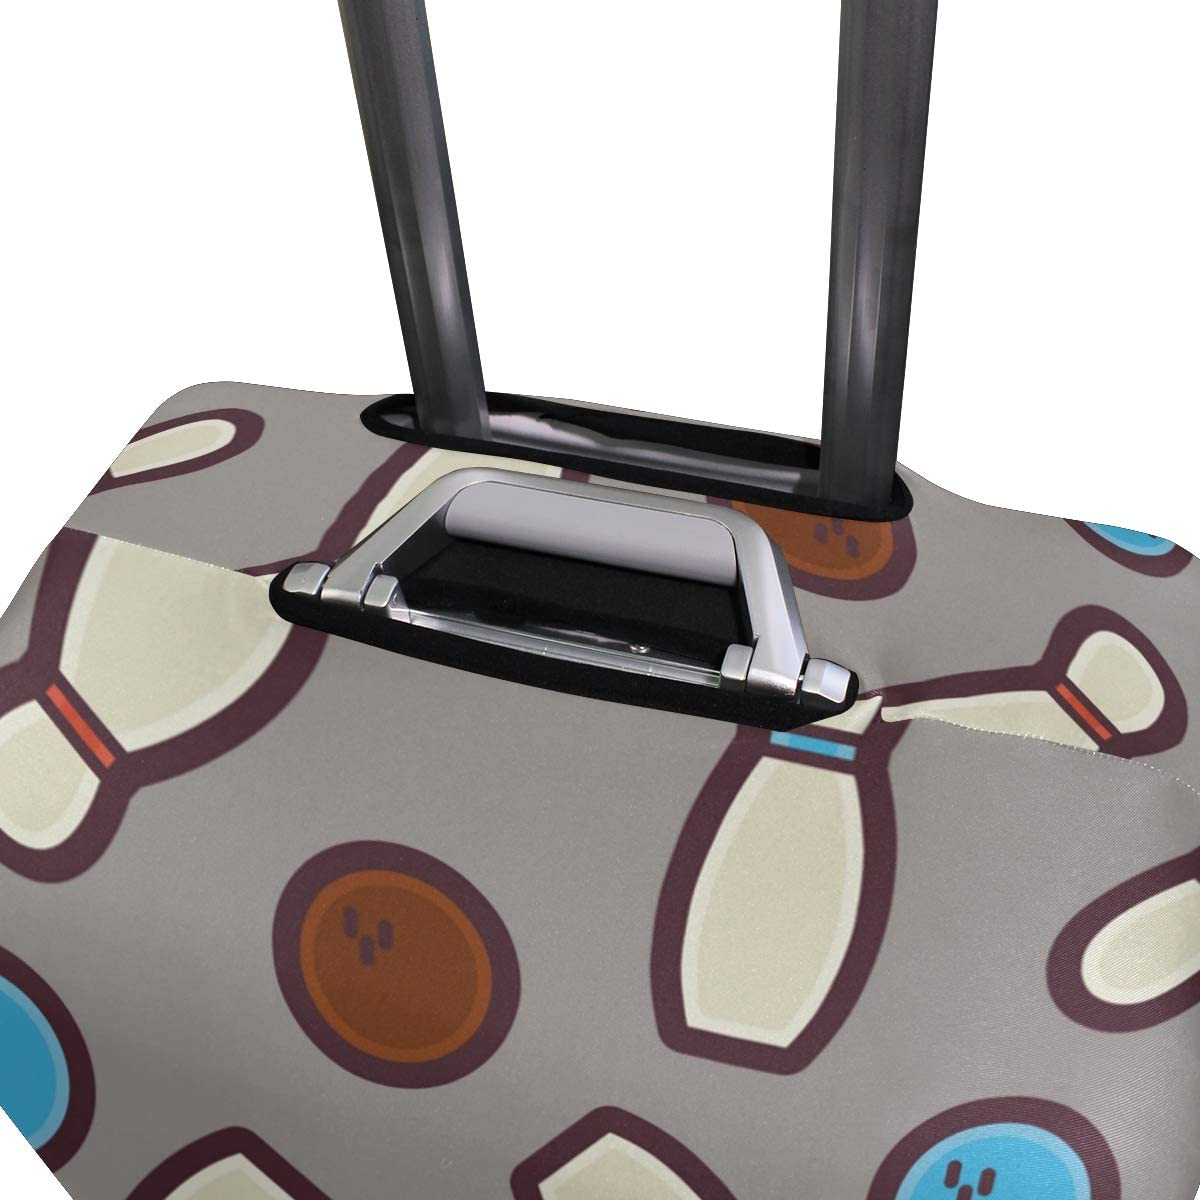 GIOVANIOR Sport Bowling Balls Luggage Cover Suitcase Protector Carry On Covers